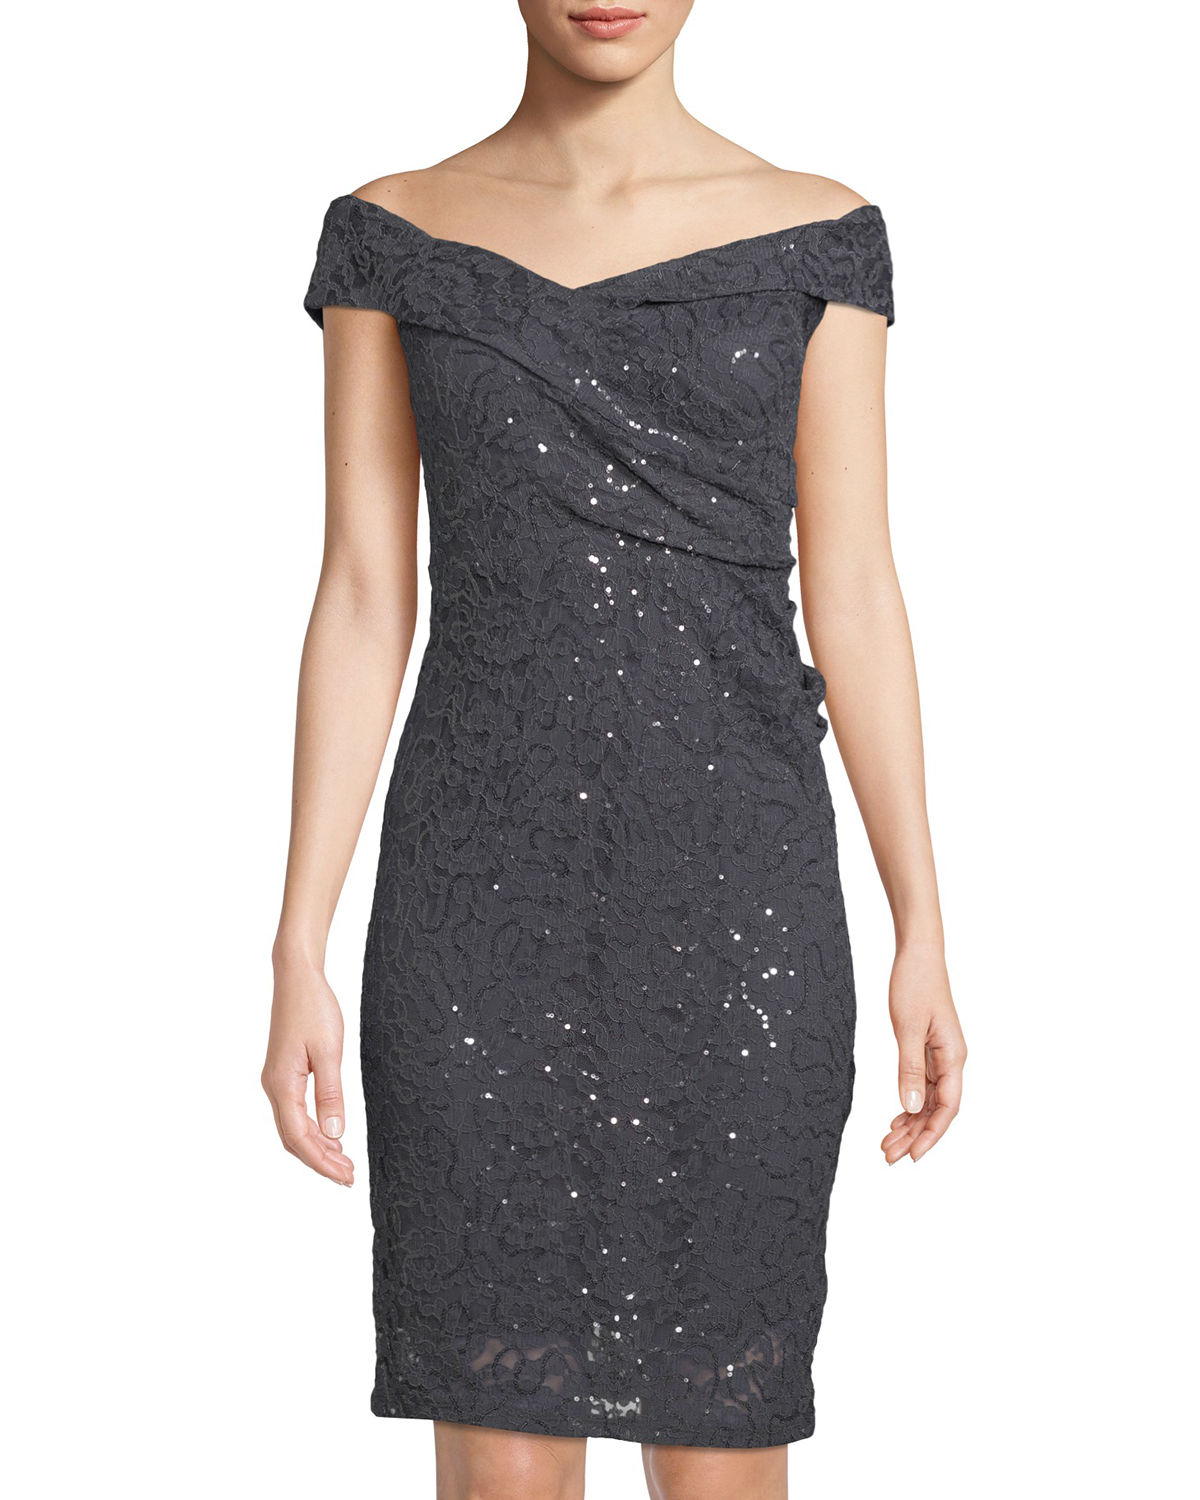 Embroidered Sequin Off-the-Shoulder Body Con Dress